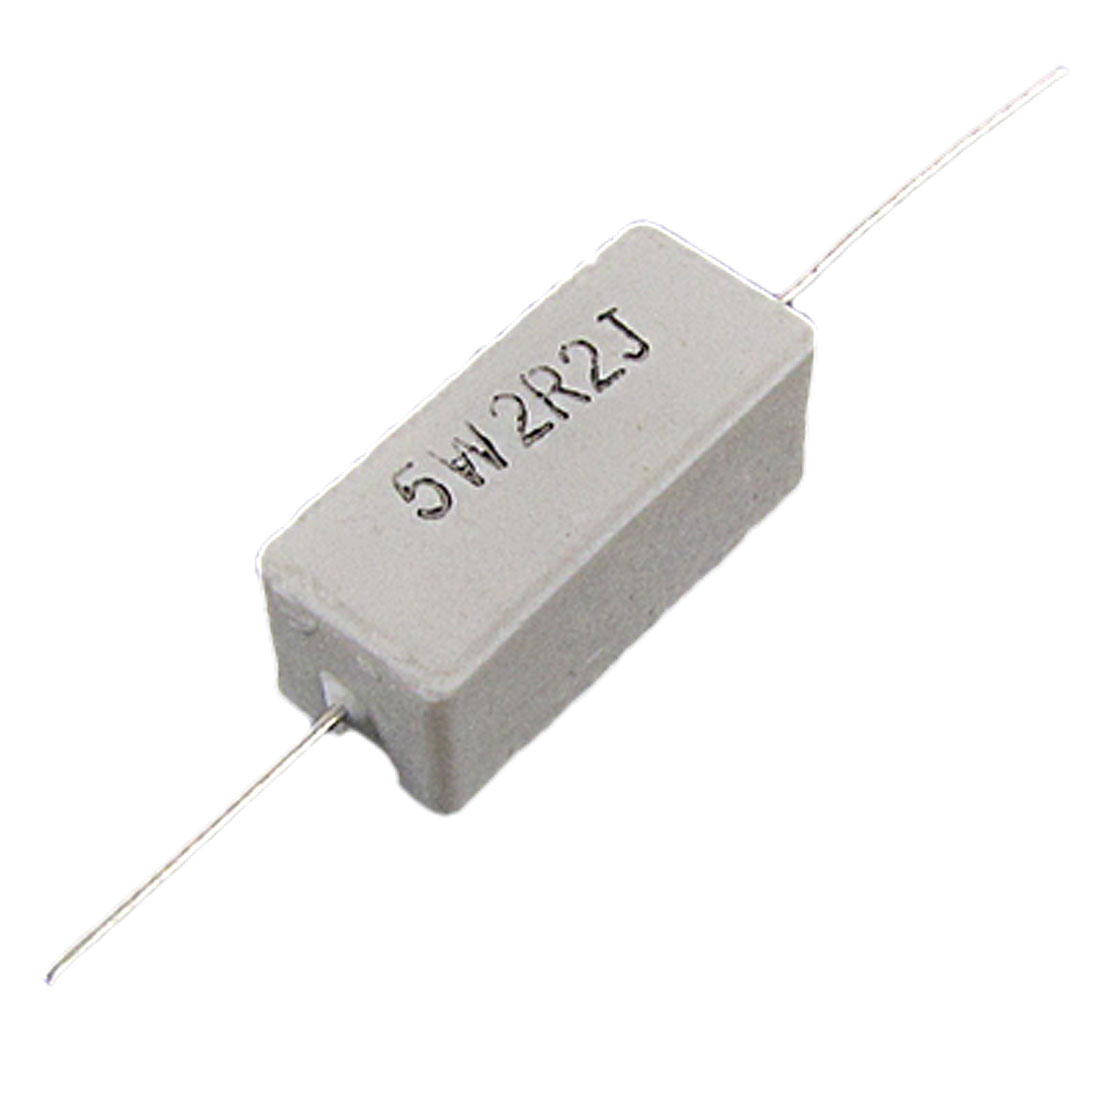 10 Pcs Wire Wound Fixed Cement Resistors 5W 2.2 2R2 Ohm 5%